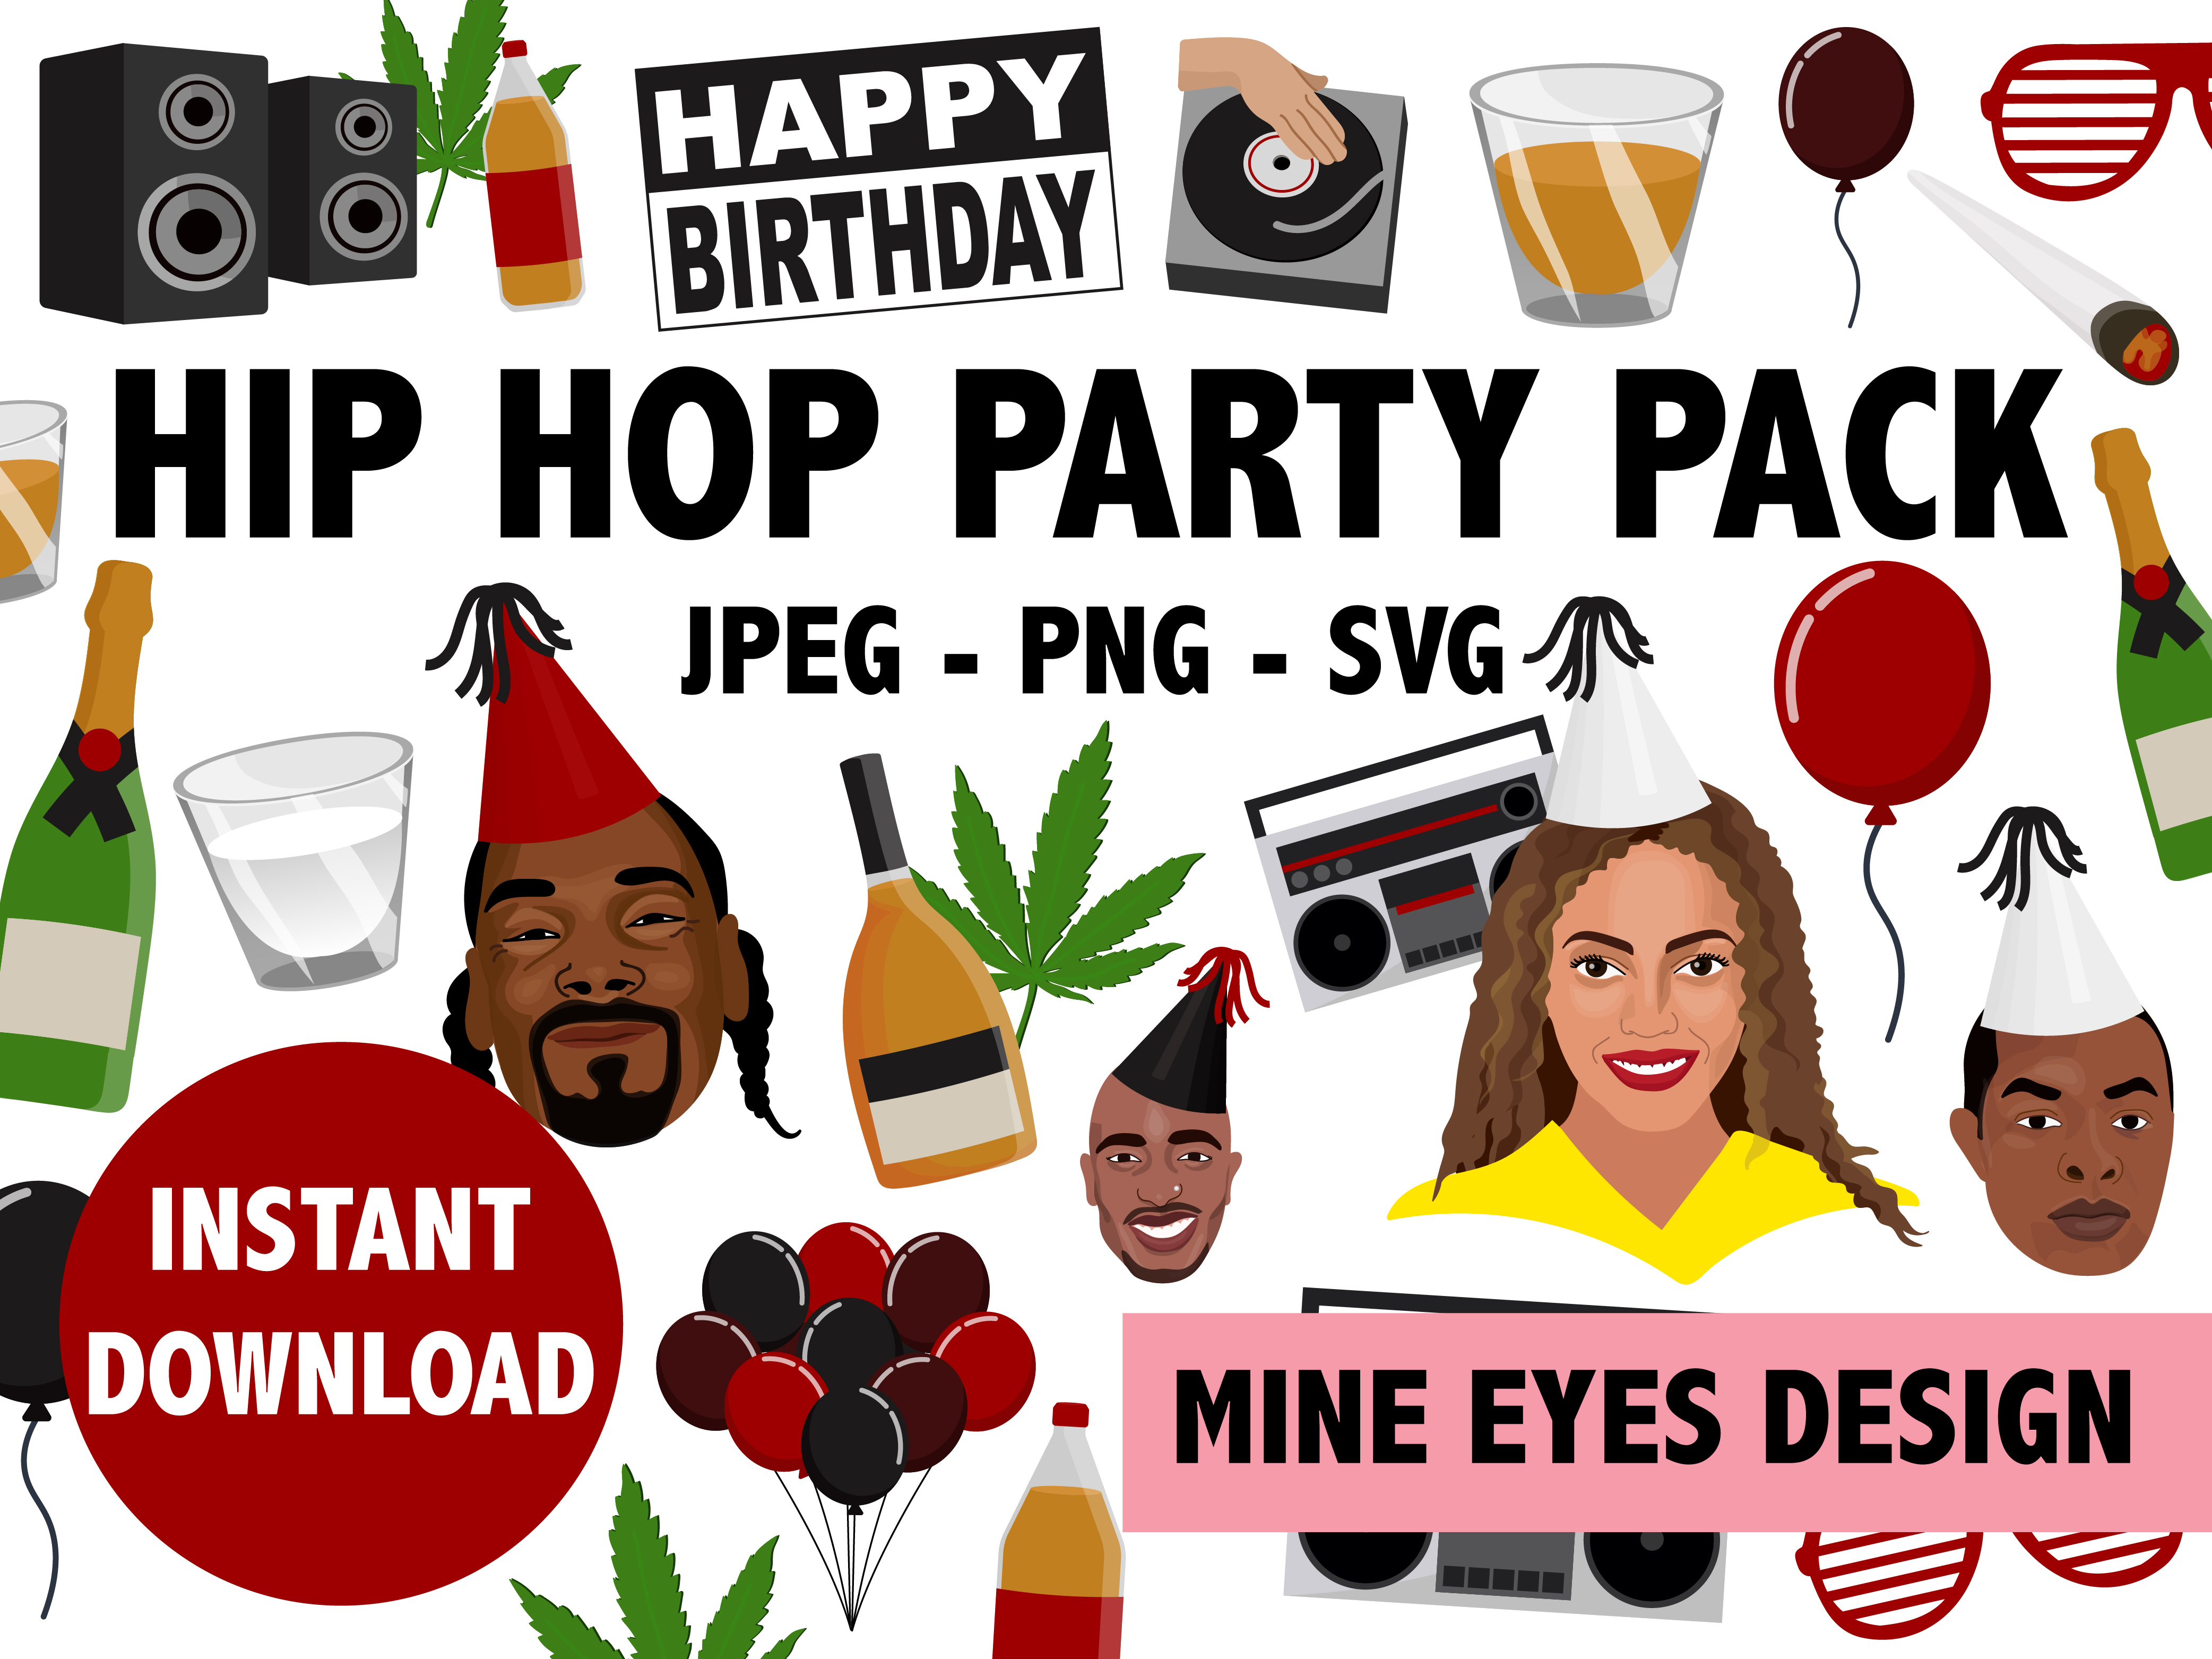 Download Free Hip Hop Party Icon Collection Grafik Von Mine Eyes Design for Cricut Explore, Silhouette and other cutting machines.